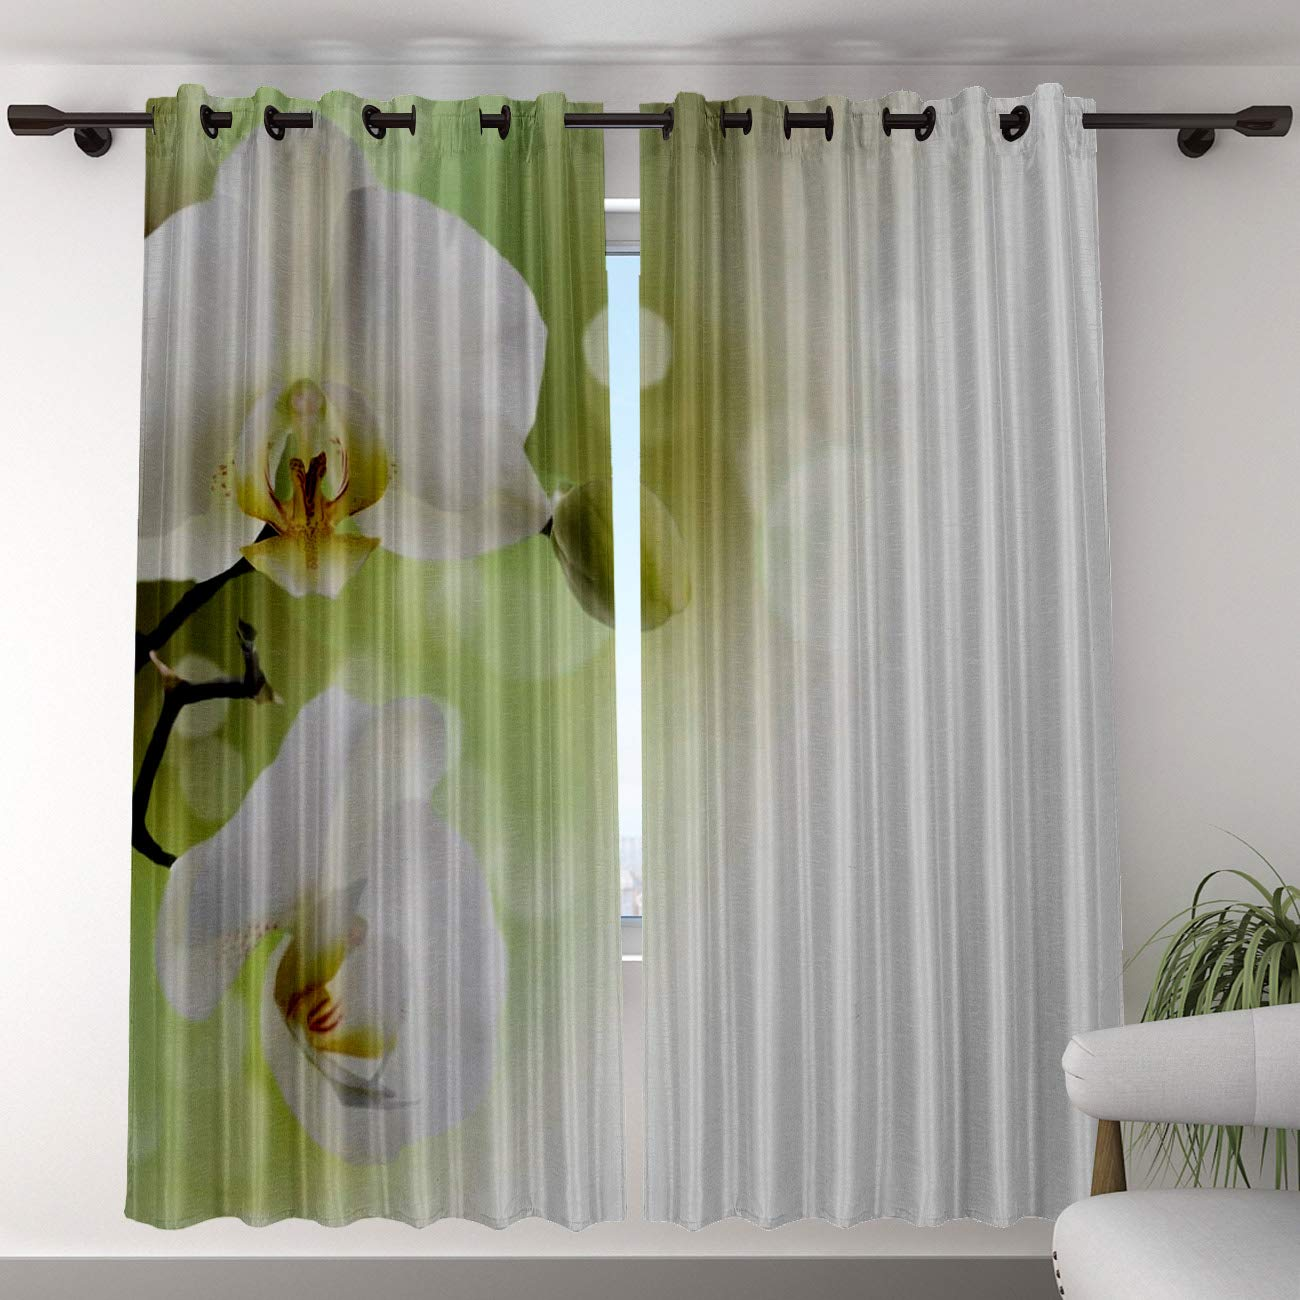 Blackout Curtain Panels Window Draperies for Living Room Bedroom Kitchen, Insulating Room Darkening Grommet Window Treatments, White Phalaenopsis Flower (52 ...